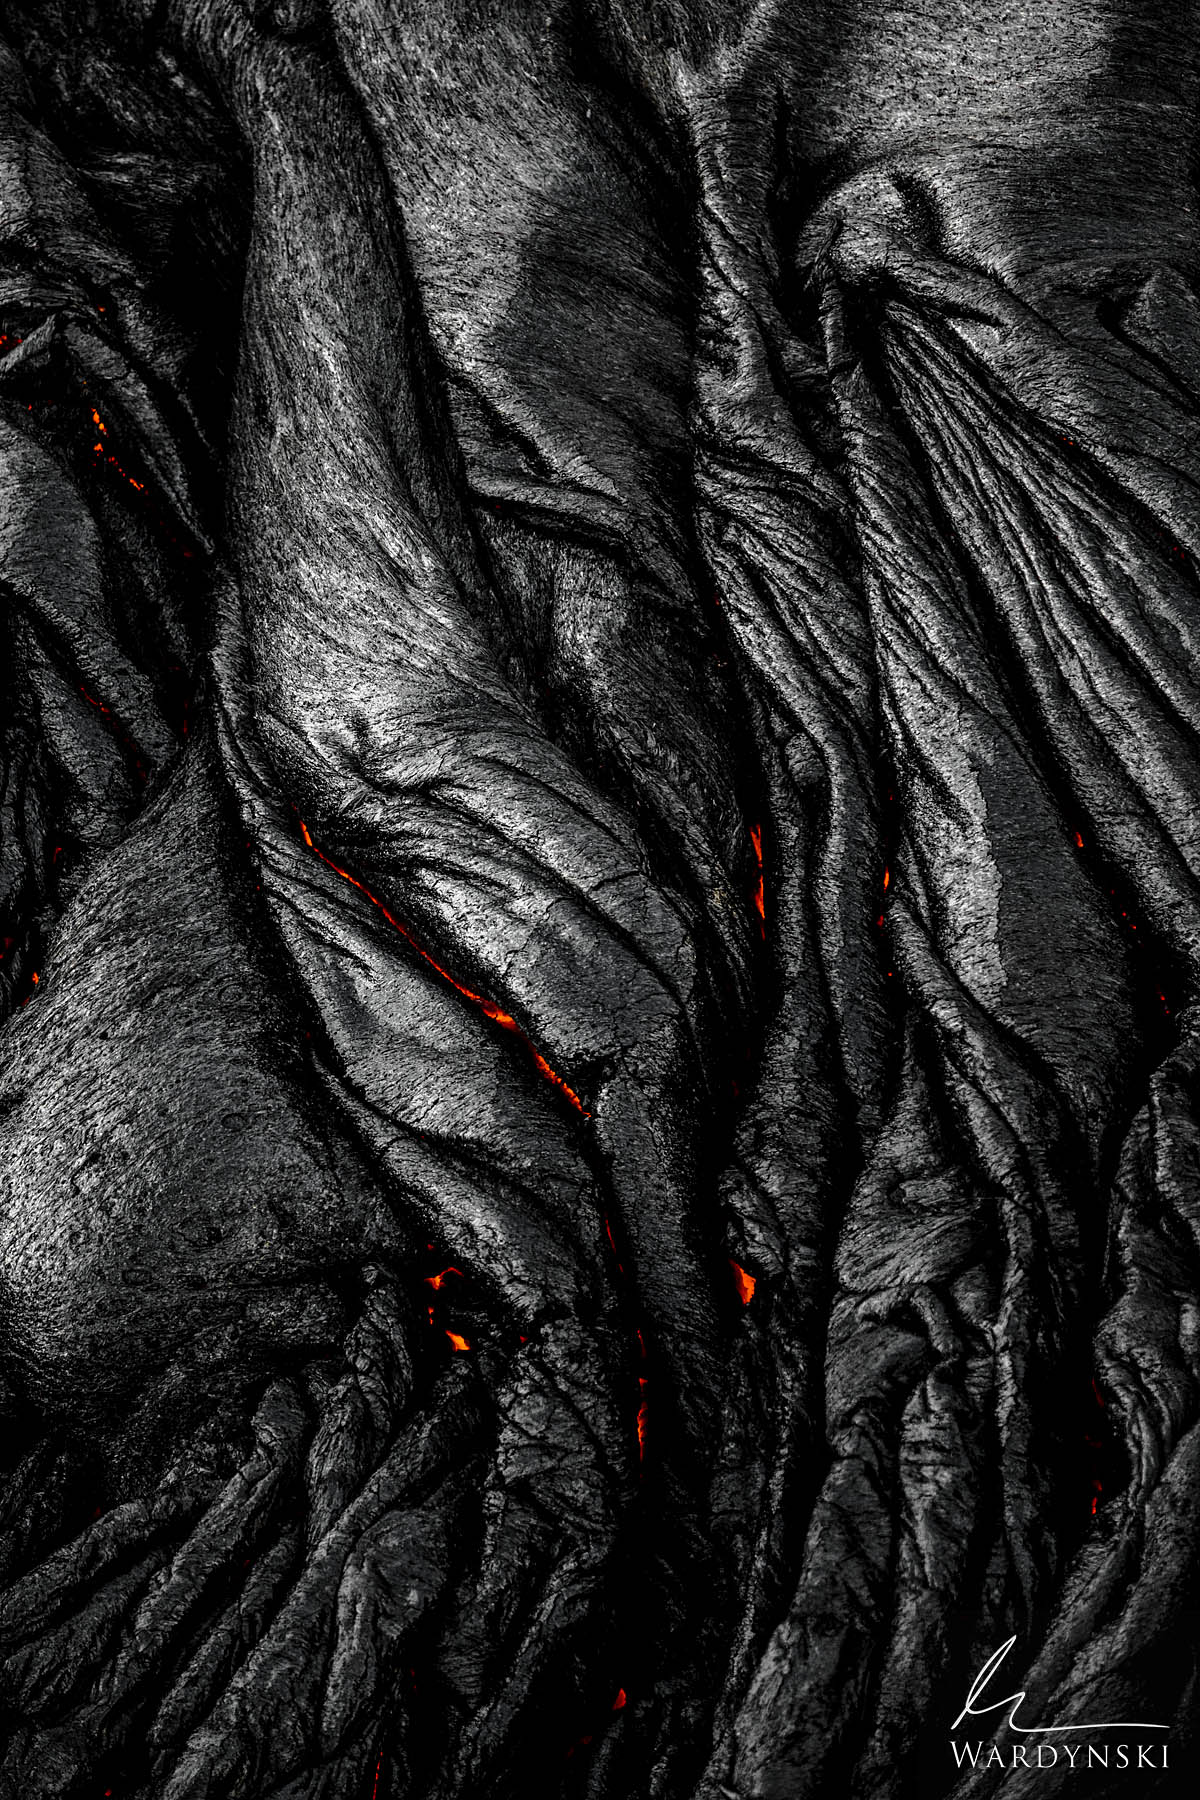 Fine Art Print | Limited Edition of 25  Hot lava can be seen just beneath the surface of freshly cooled black rock. The folded...